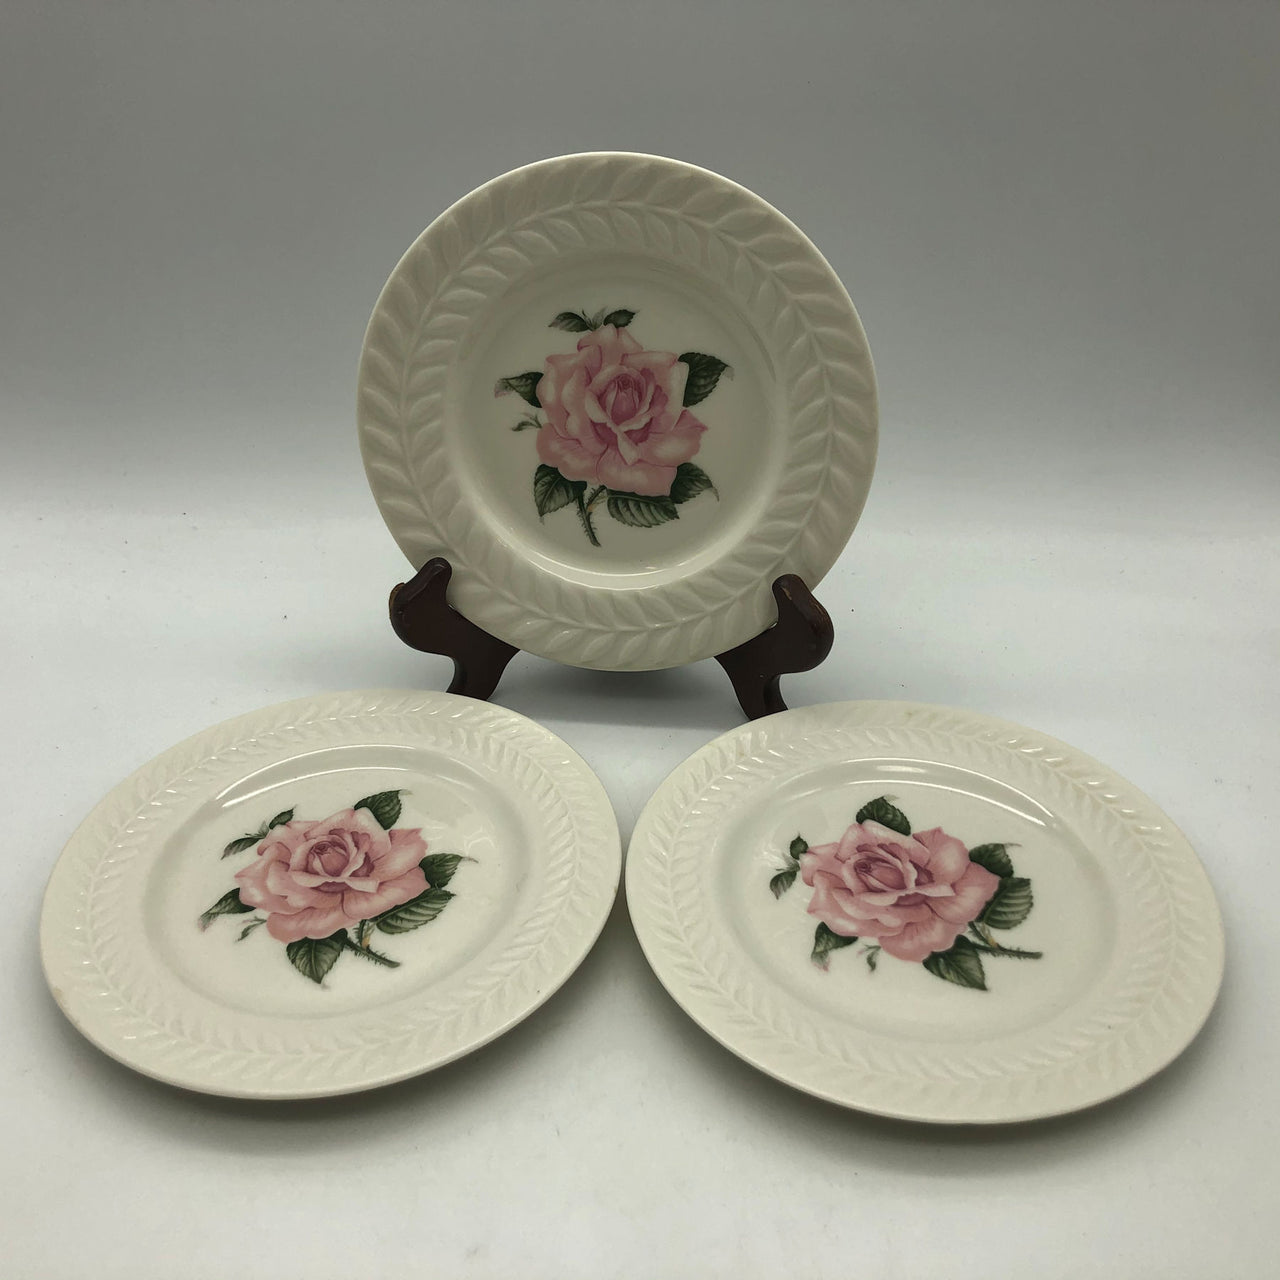 3 Theodore Haviland Regents Park Rose Bread and Butter Plates 6-1/2""